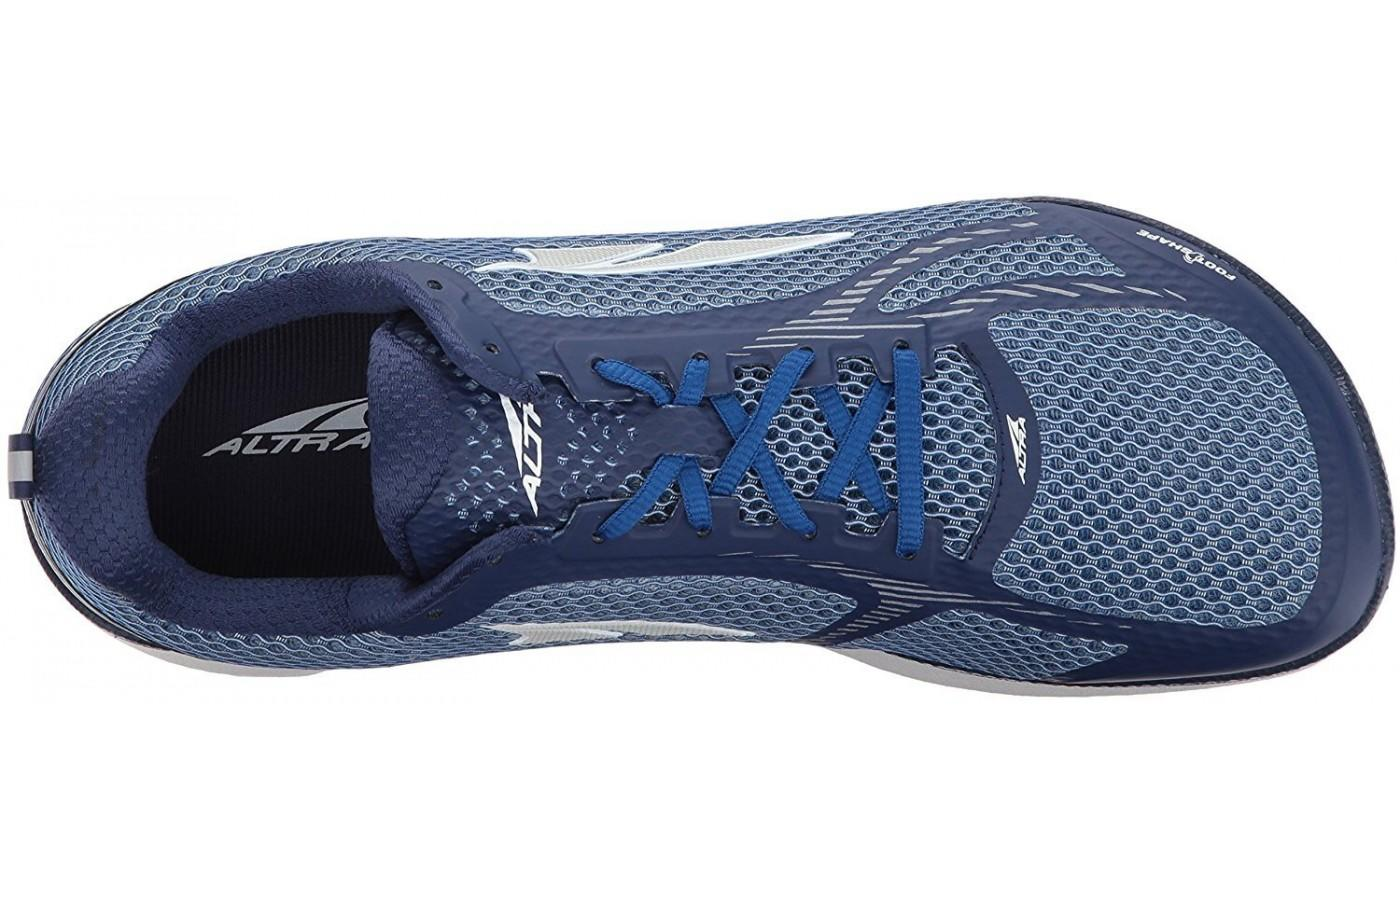 The upper of the Altra Paradigm 3.0 has Quick-Dry Air Mesh